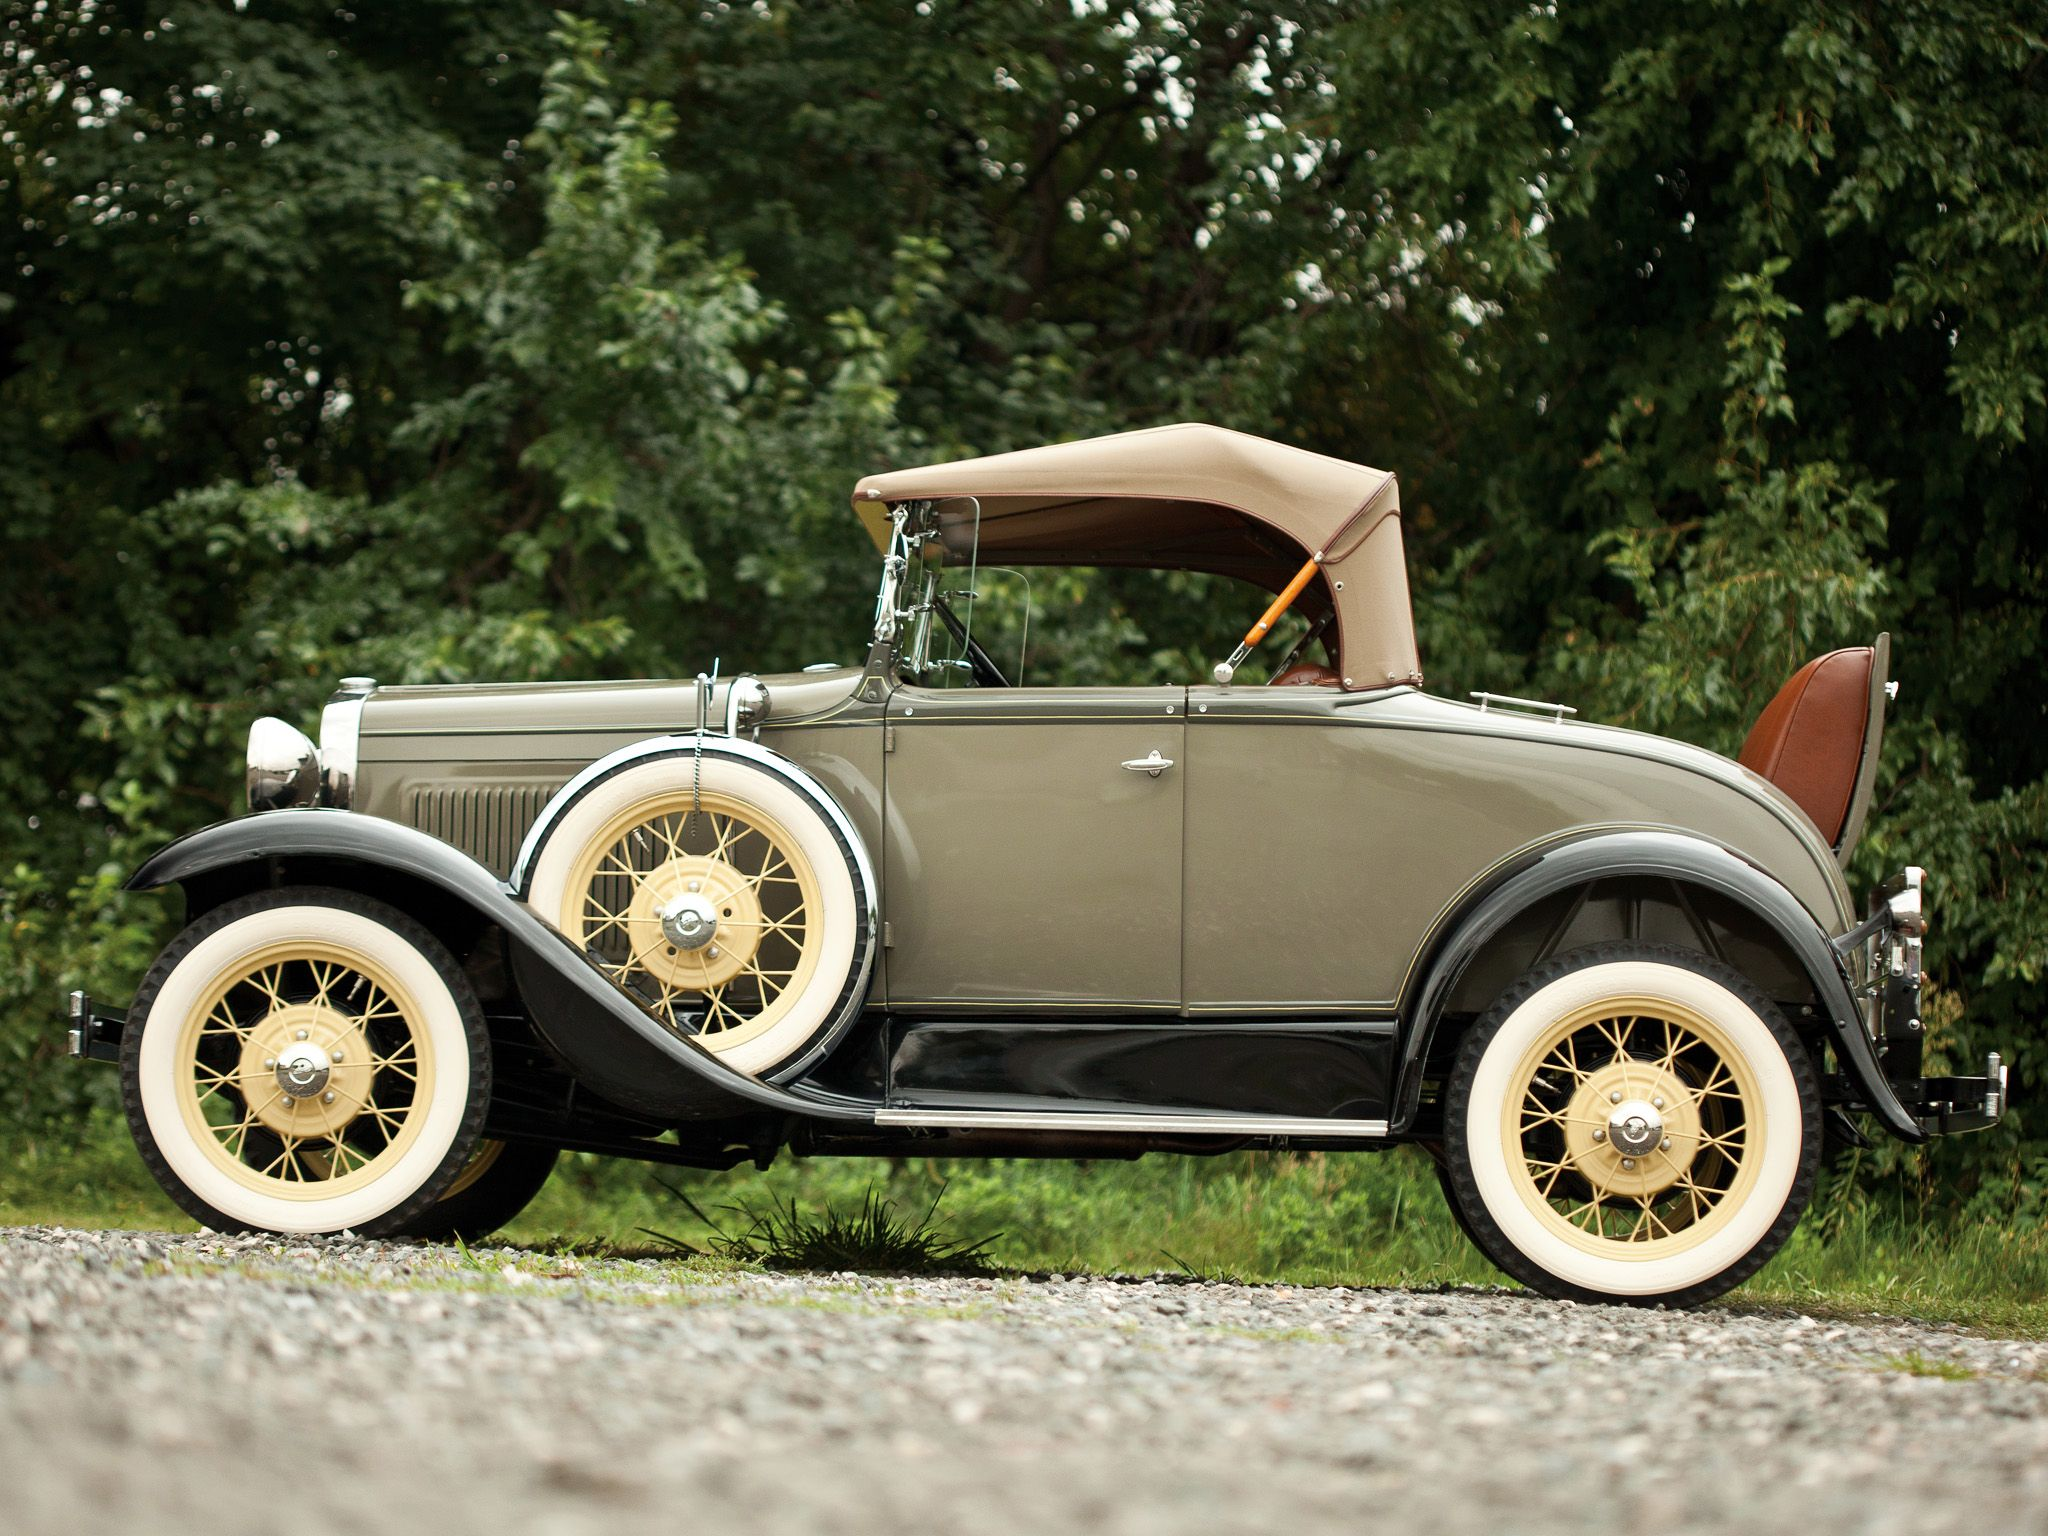 1930 Ford Model A Deluxe Roadster 3 Maintenance of old vehicles: the ...